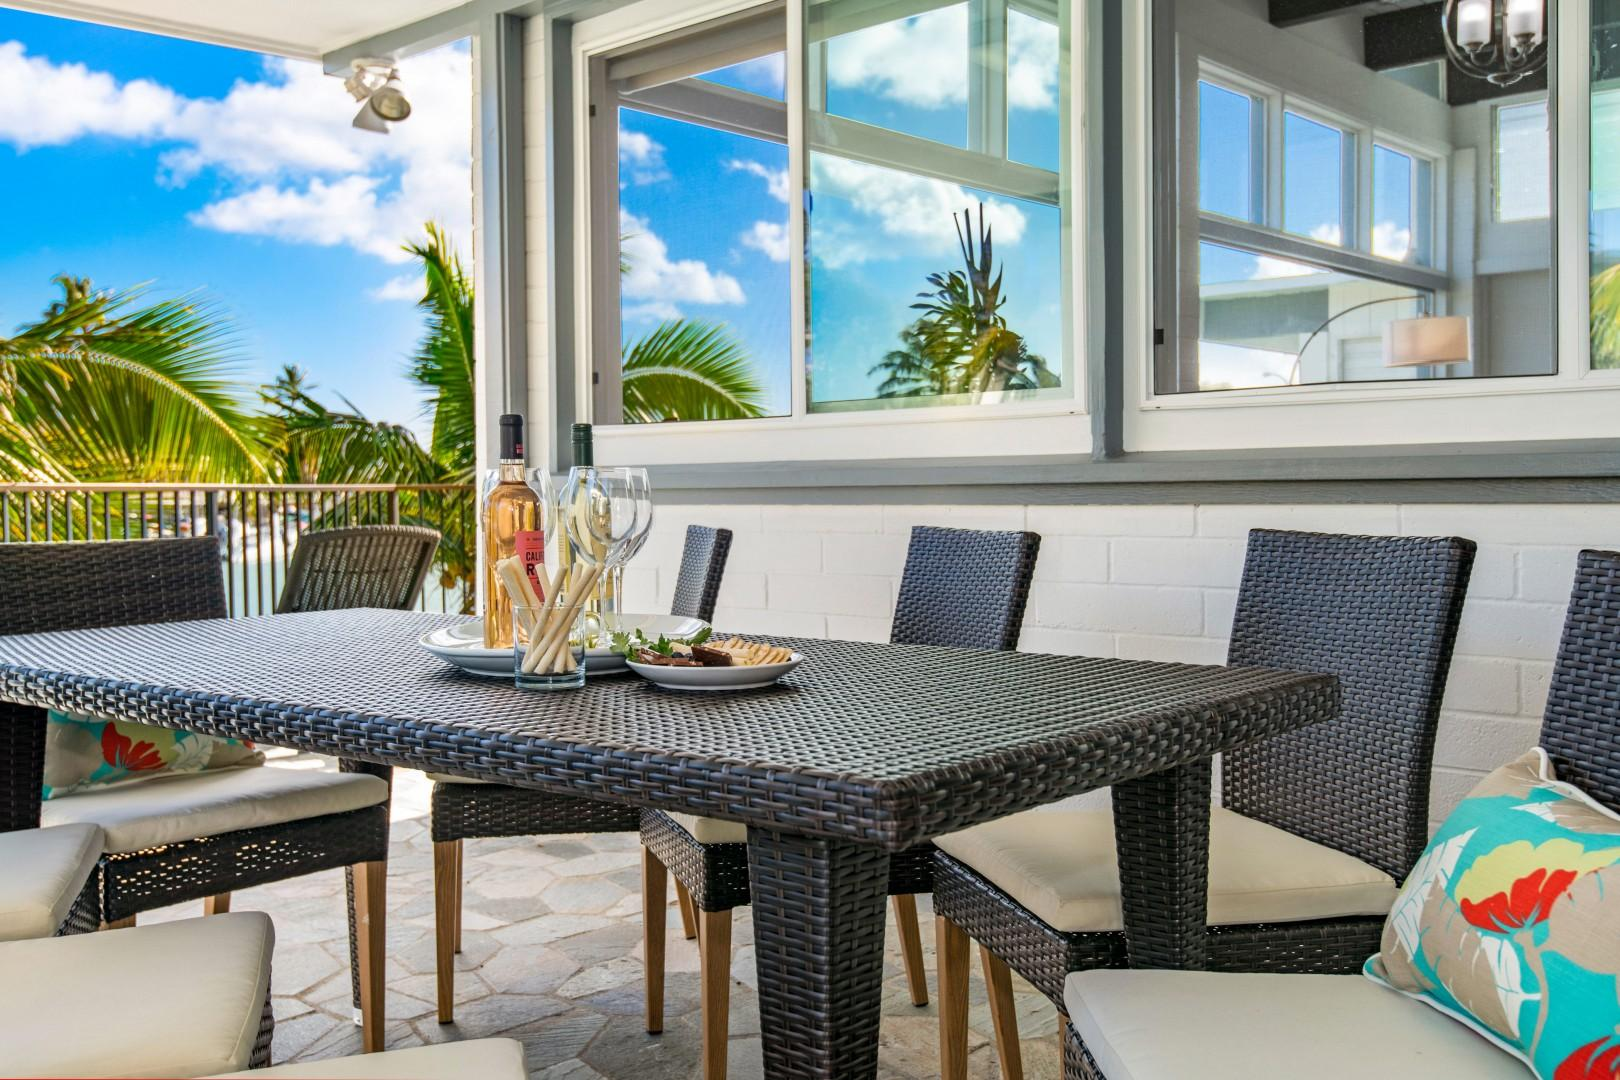 Outdoor dining and BBQ lanai.